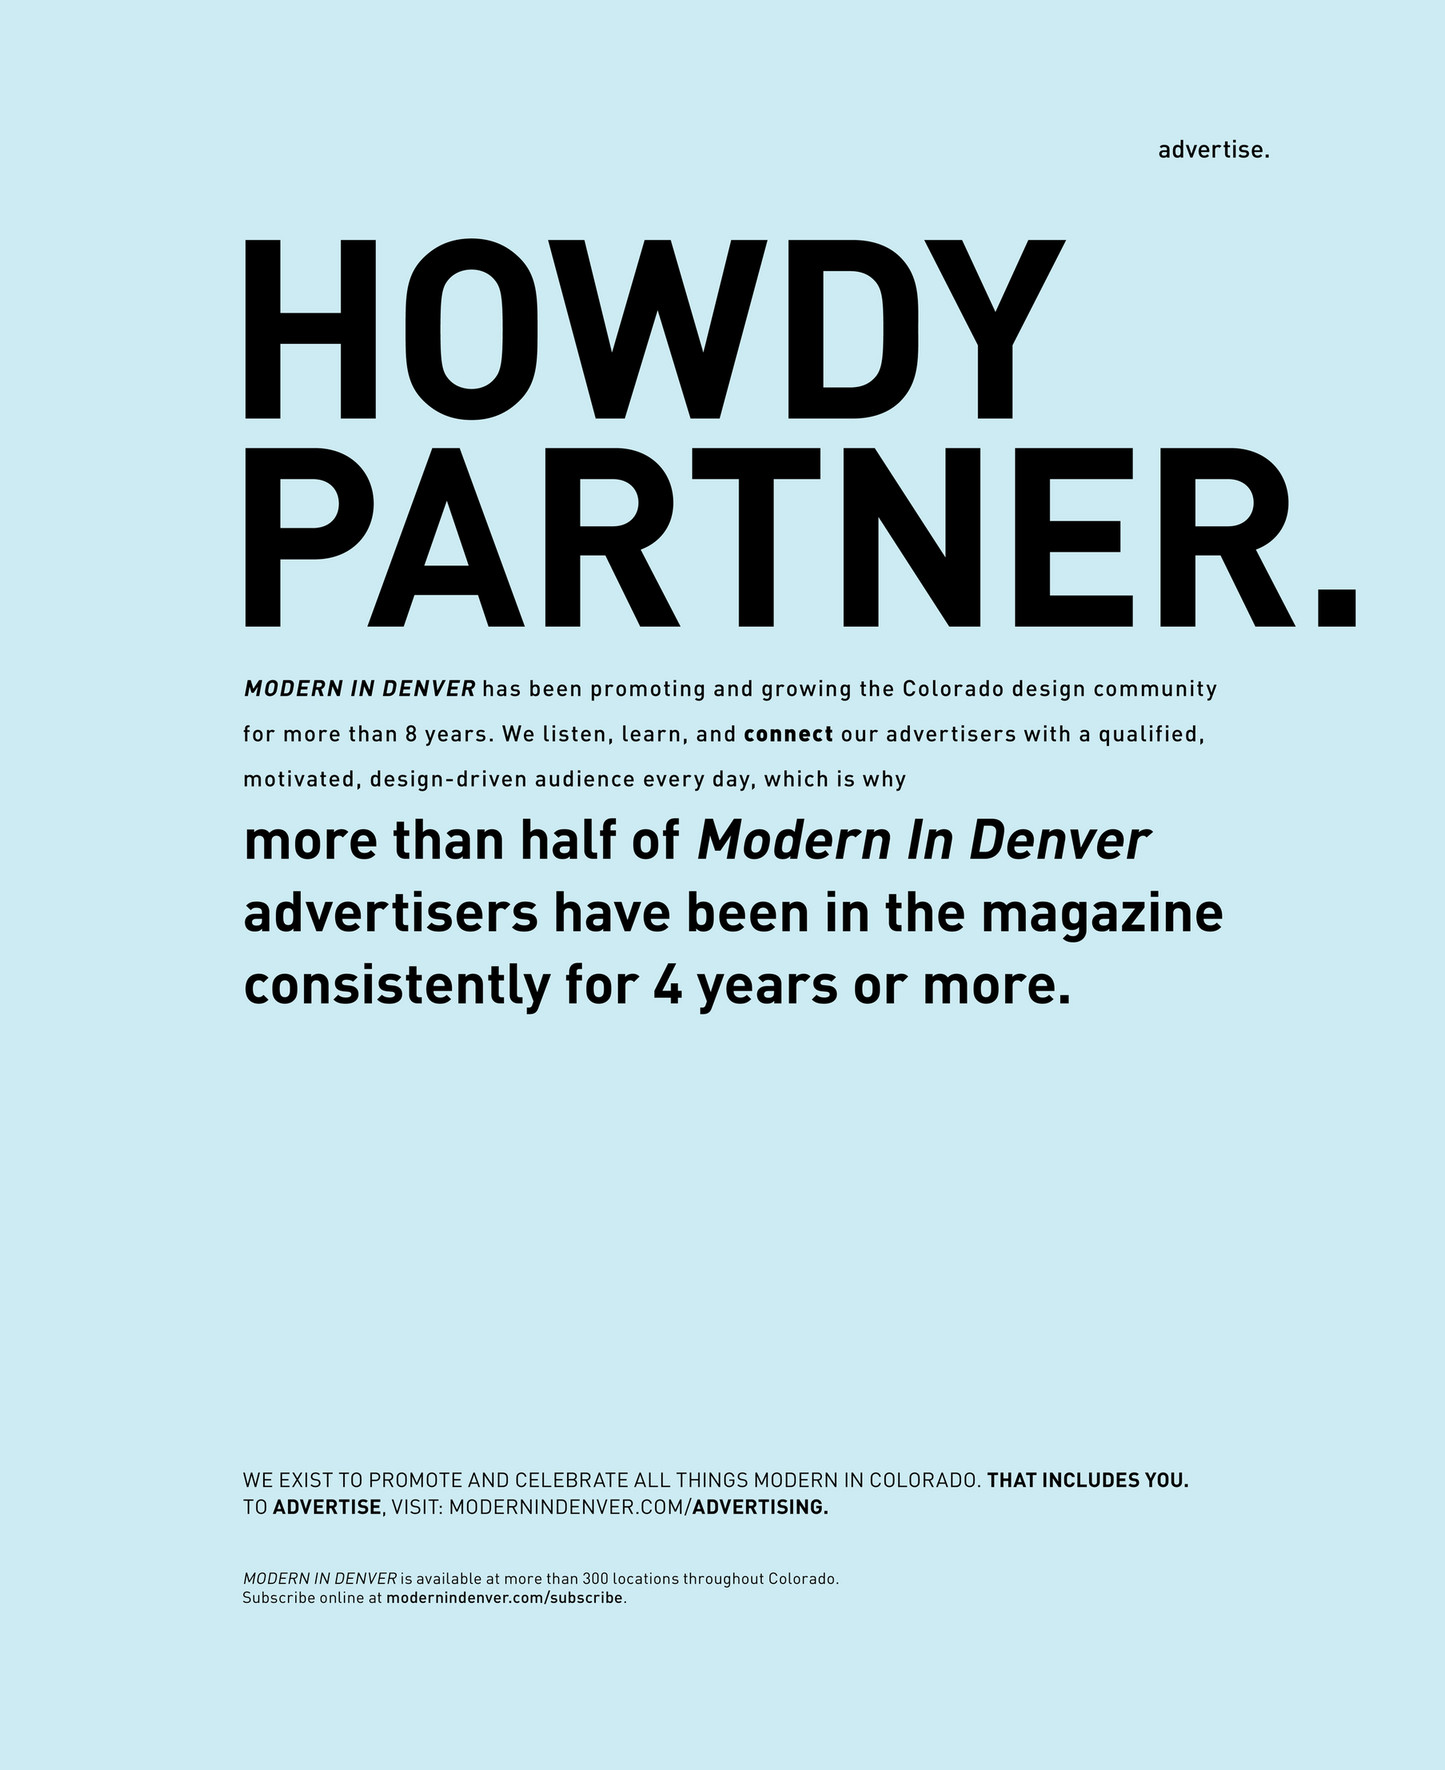 modern in denver  modern in denver  winter   page  - we exist to promote and celebrate all things modern in colorado thatincludes you to advertise visit modernindenvercomadvertising